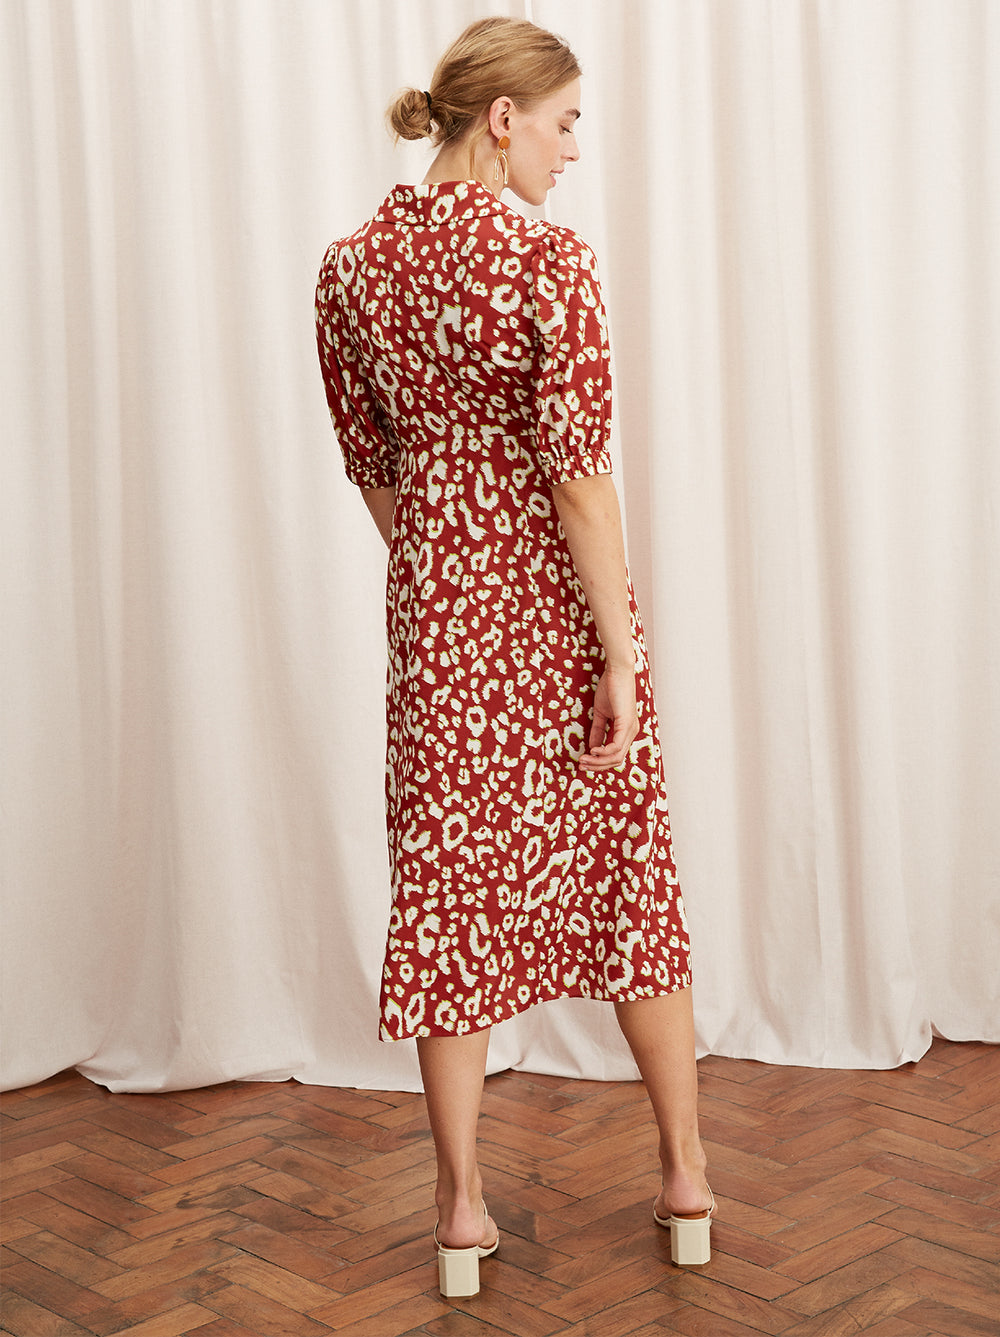 Siena Animal Print Tea Dress by KITRI Studio